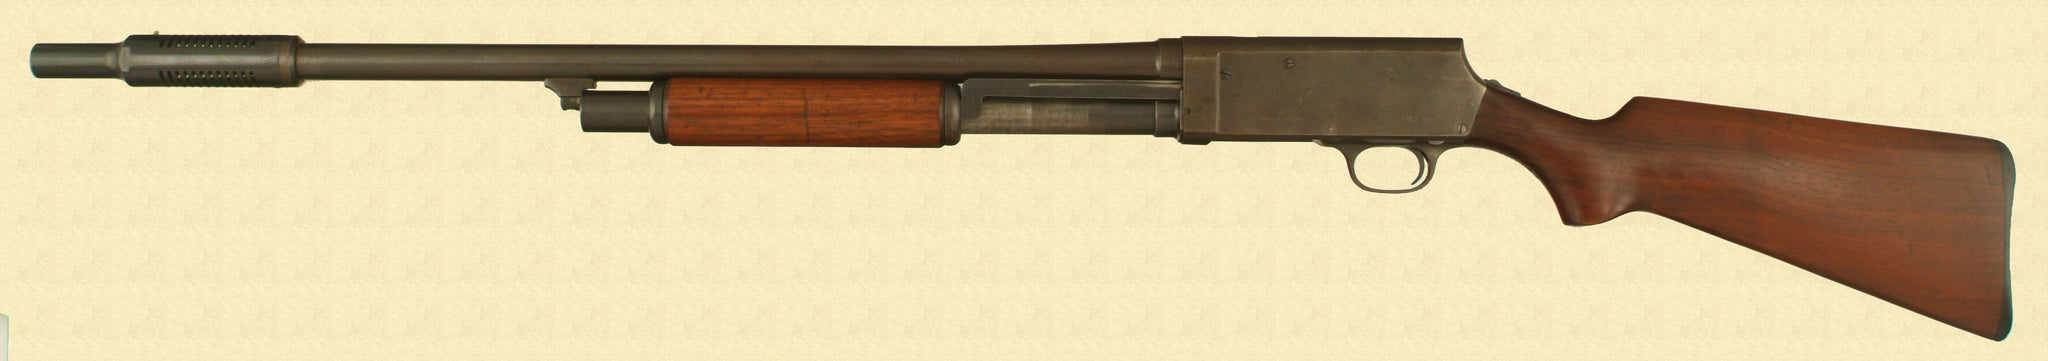 STEVENS MODEL 520-30 MILITARY TRAINING SHOTGUN